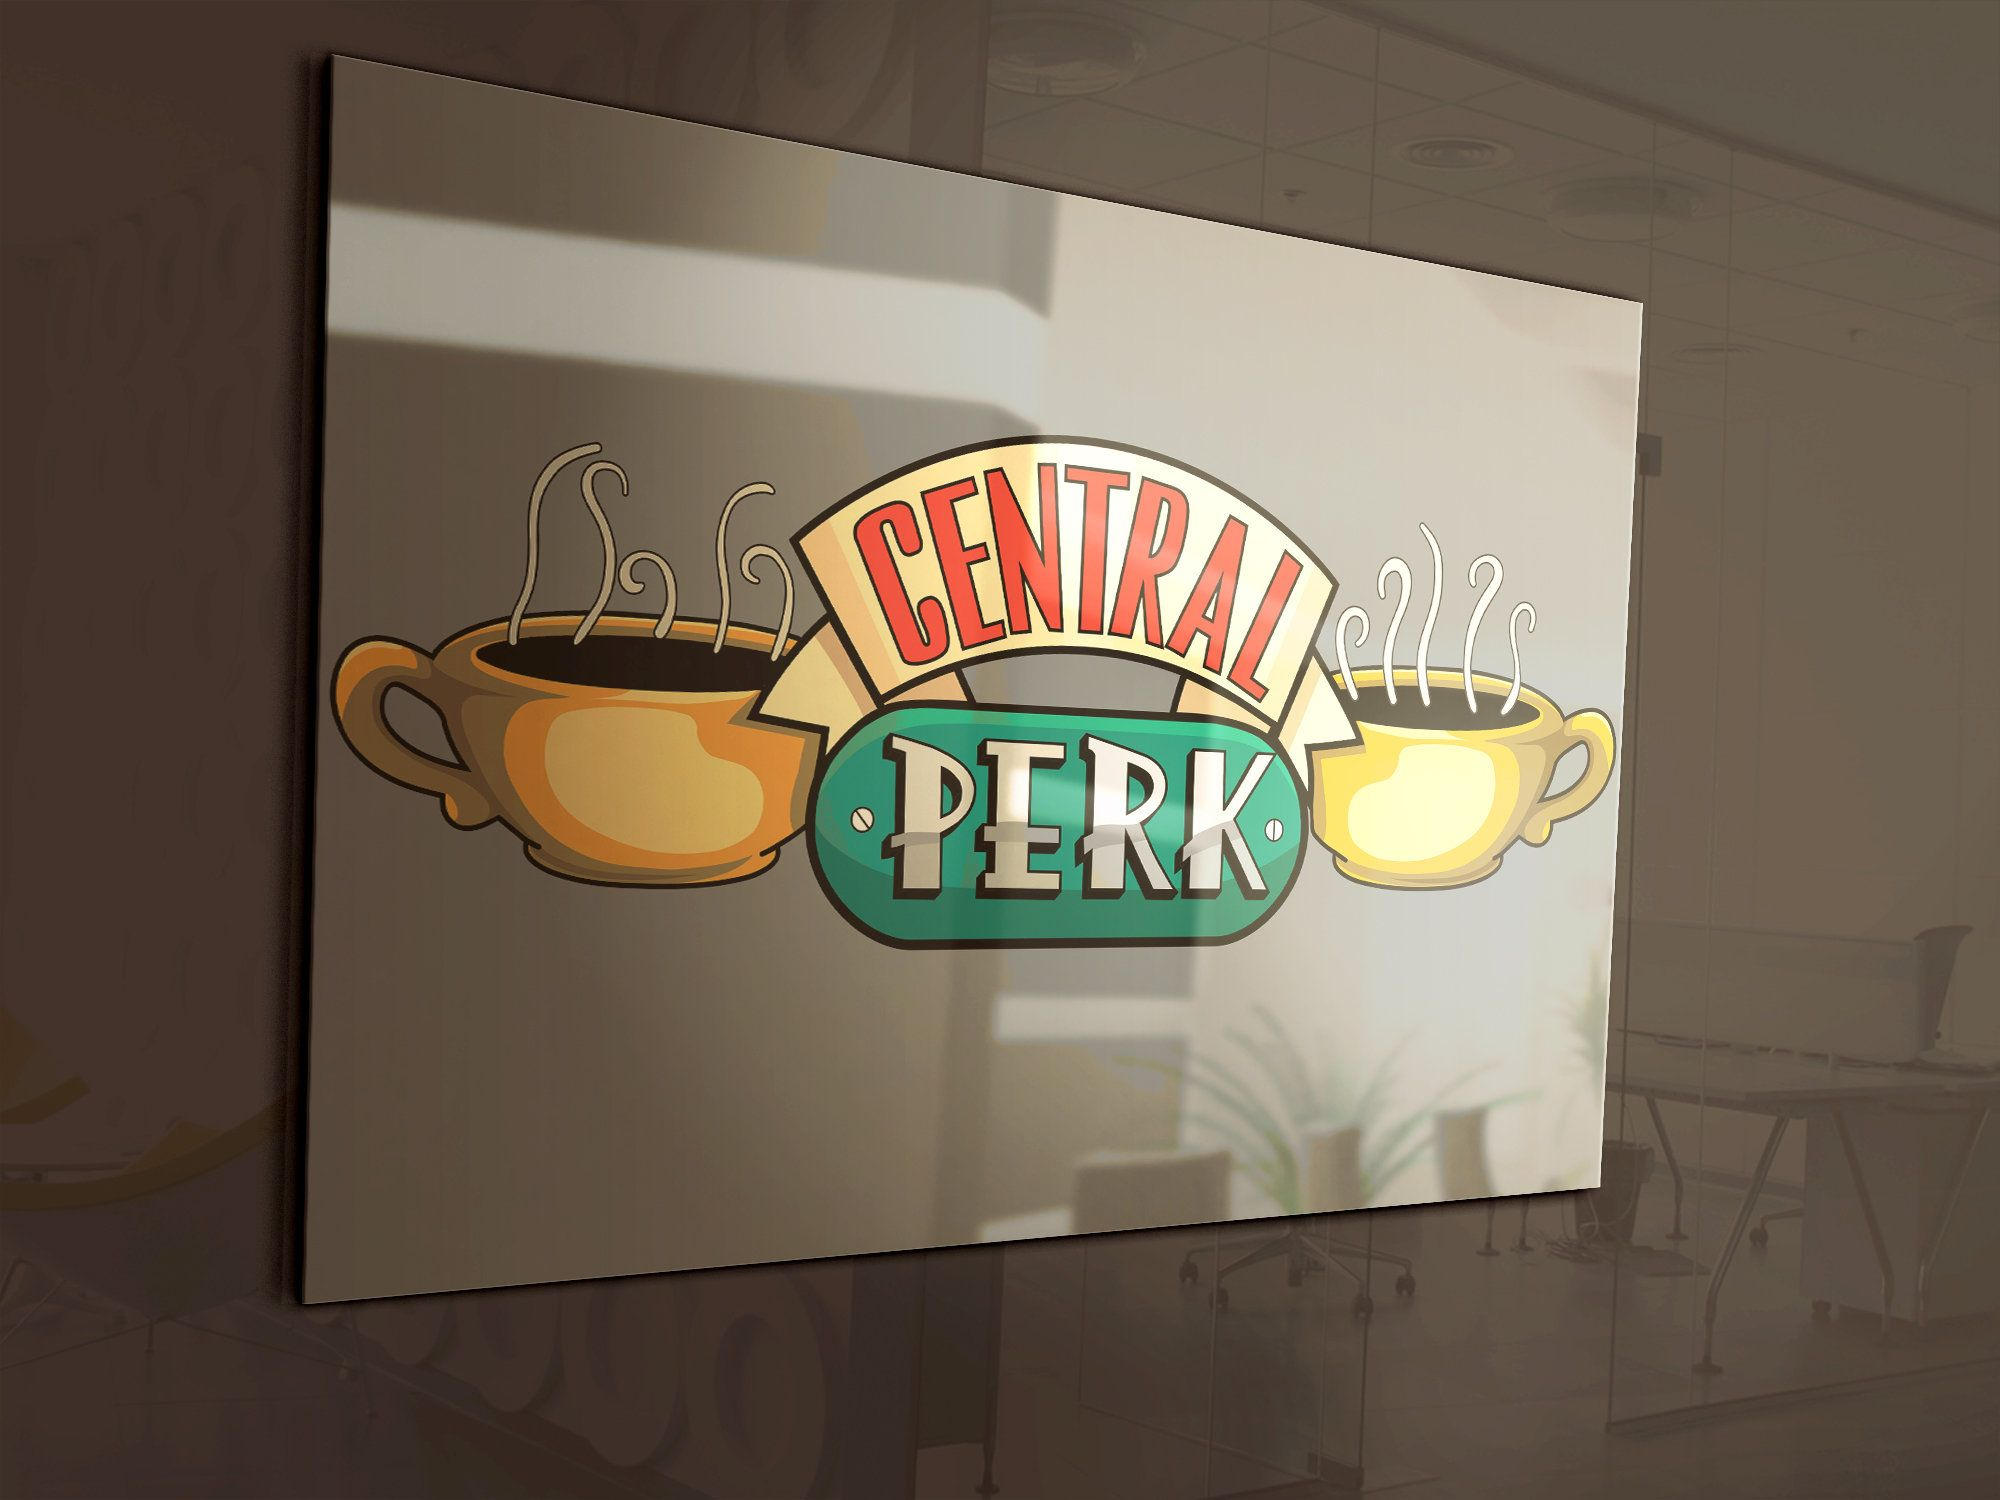 Logo Central Perk Friends vectorial a color y escala de